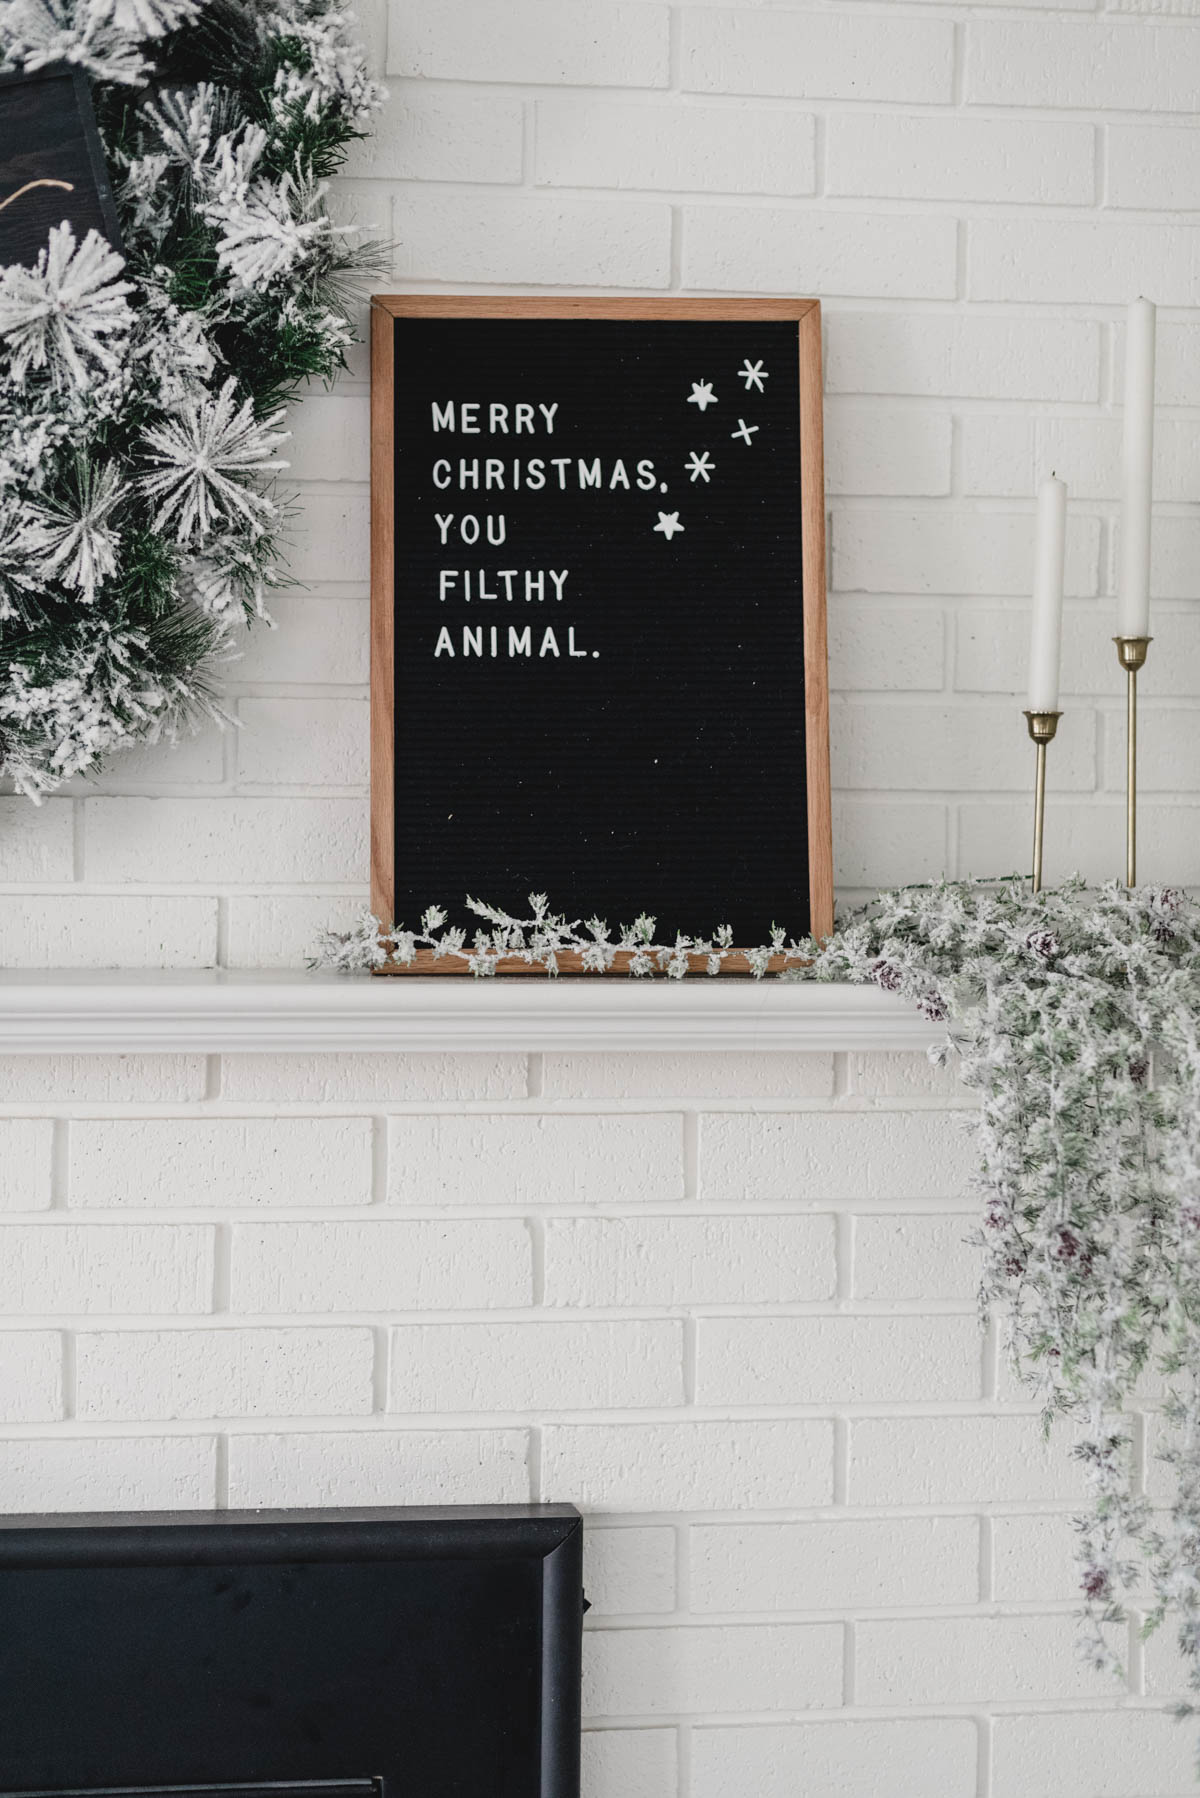 Holiday letterboard- merry christmas you filthy animal!